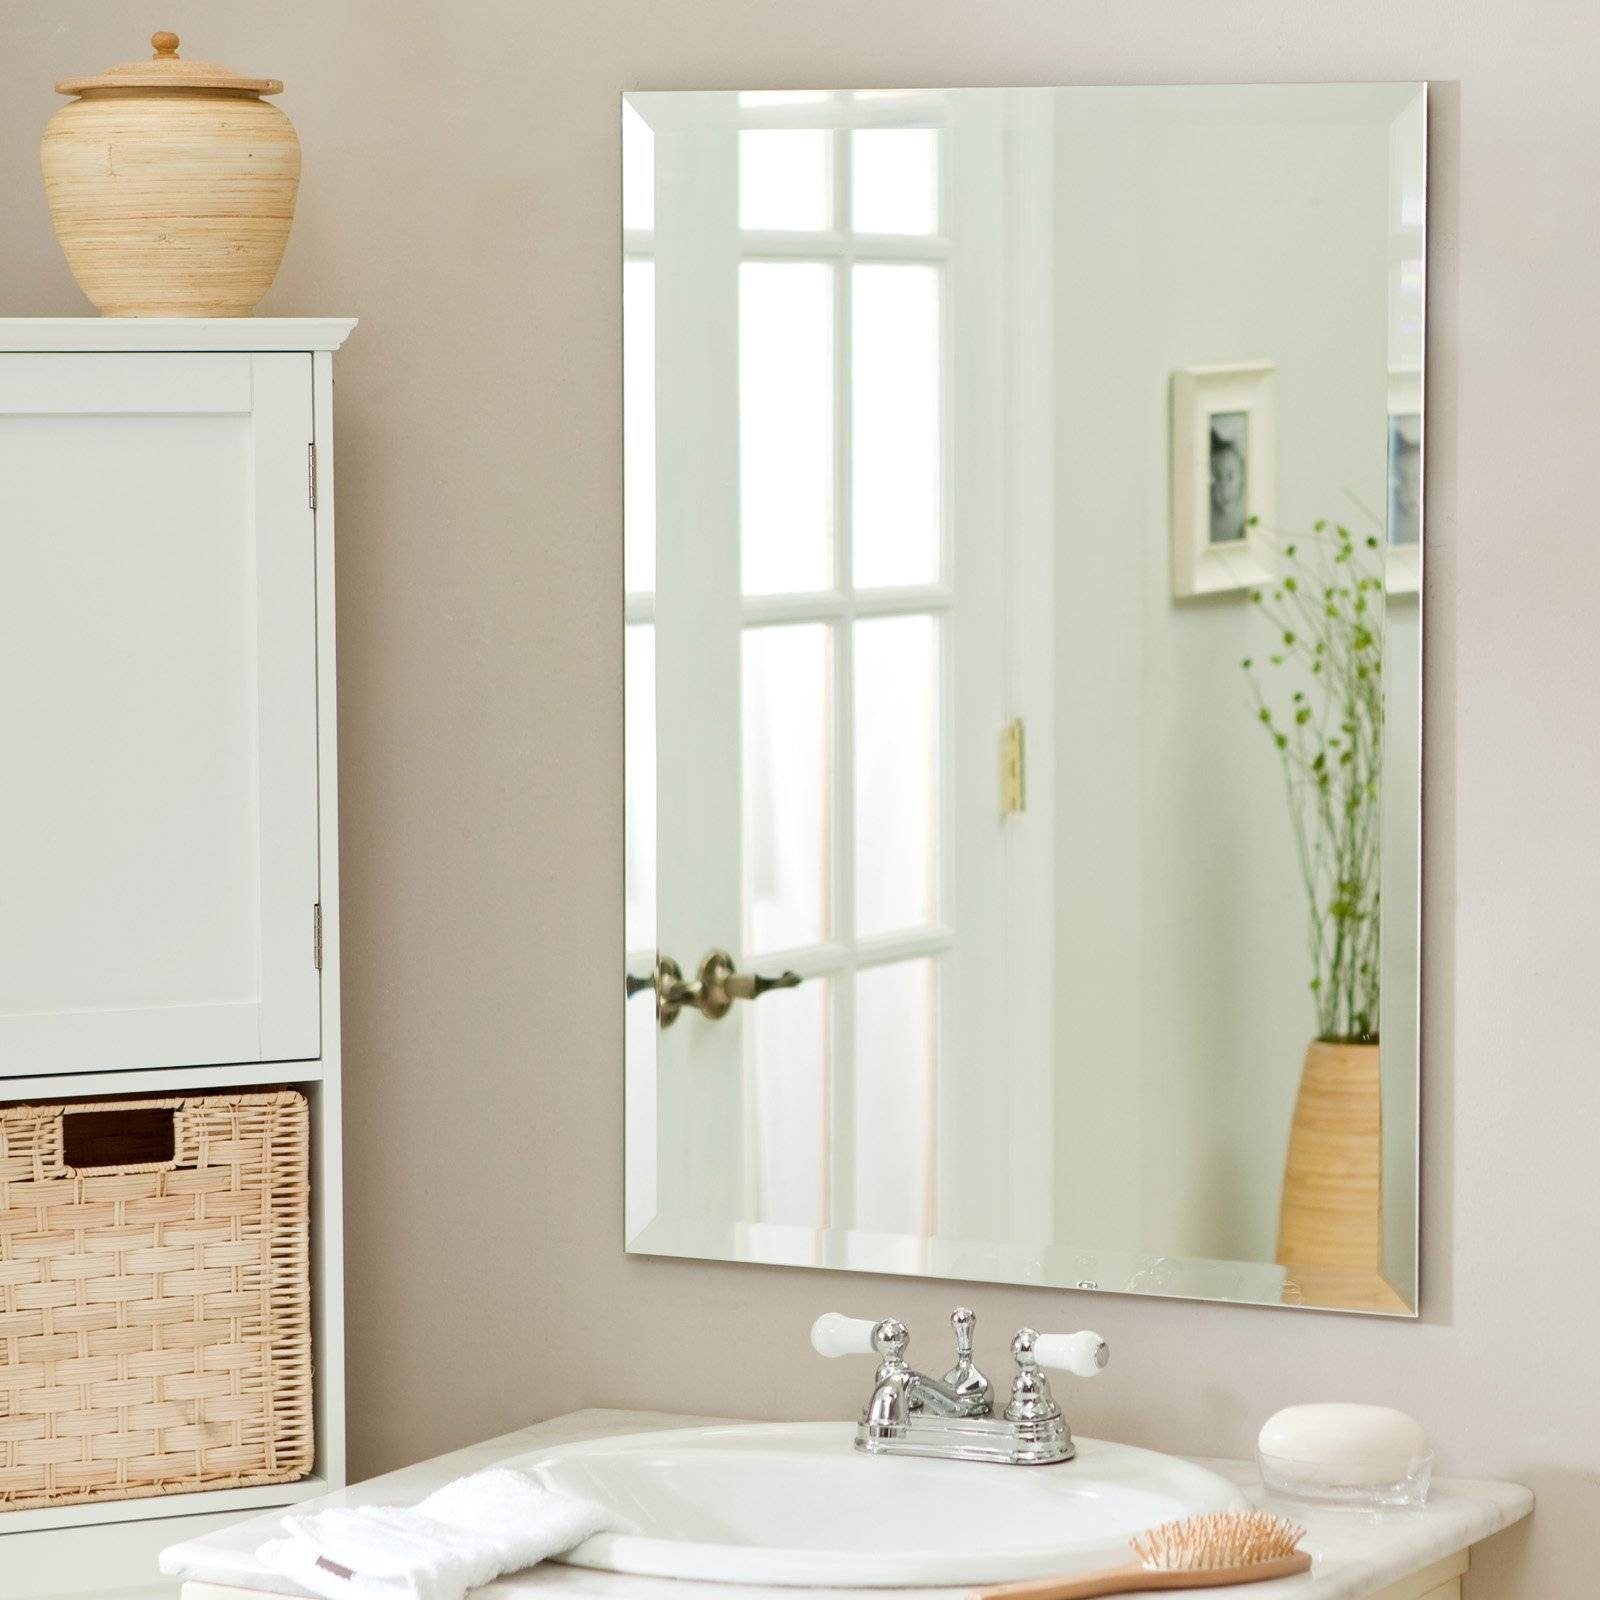 Bathroom Mirror Bevelled Edge – Harpsounds.co throughout Bevelled Wall Mirrors (Image 3 of 25)